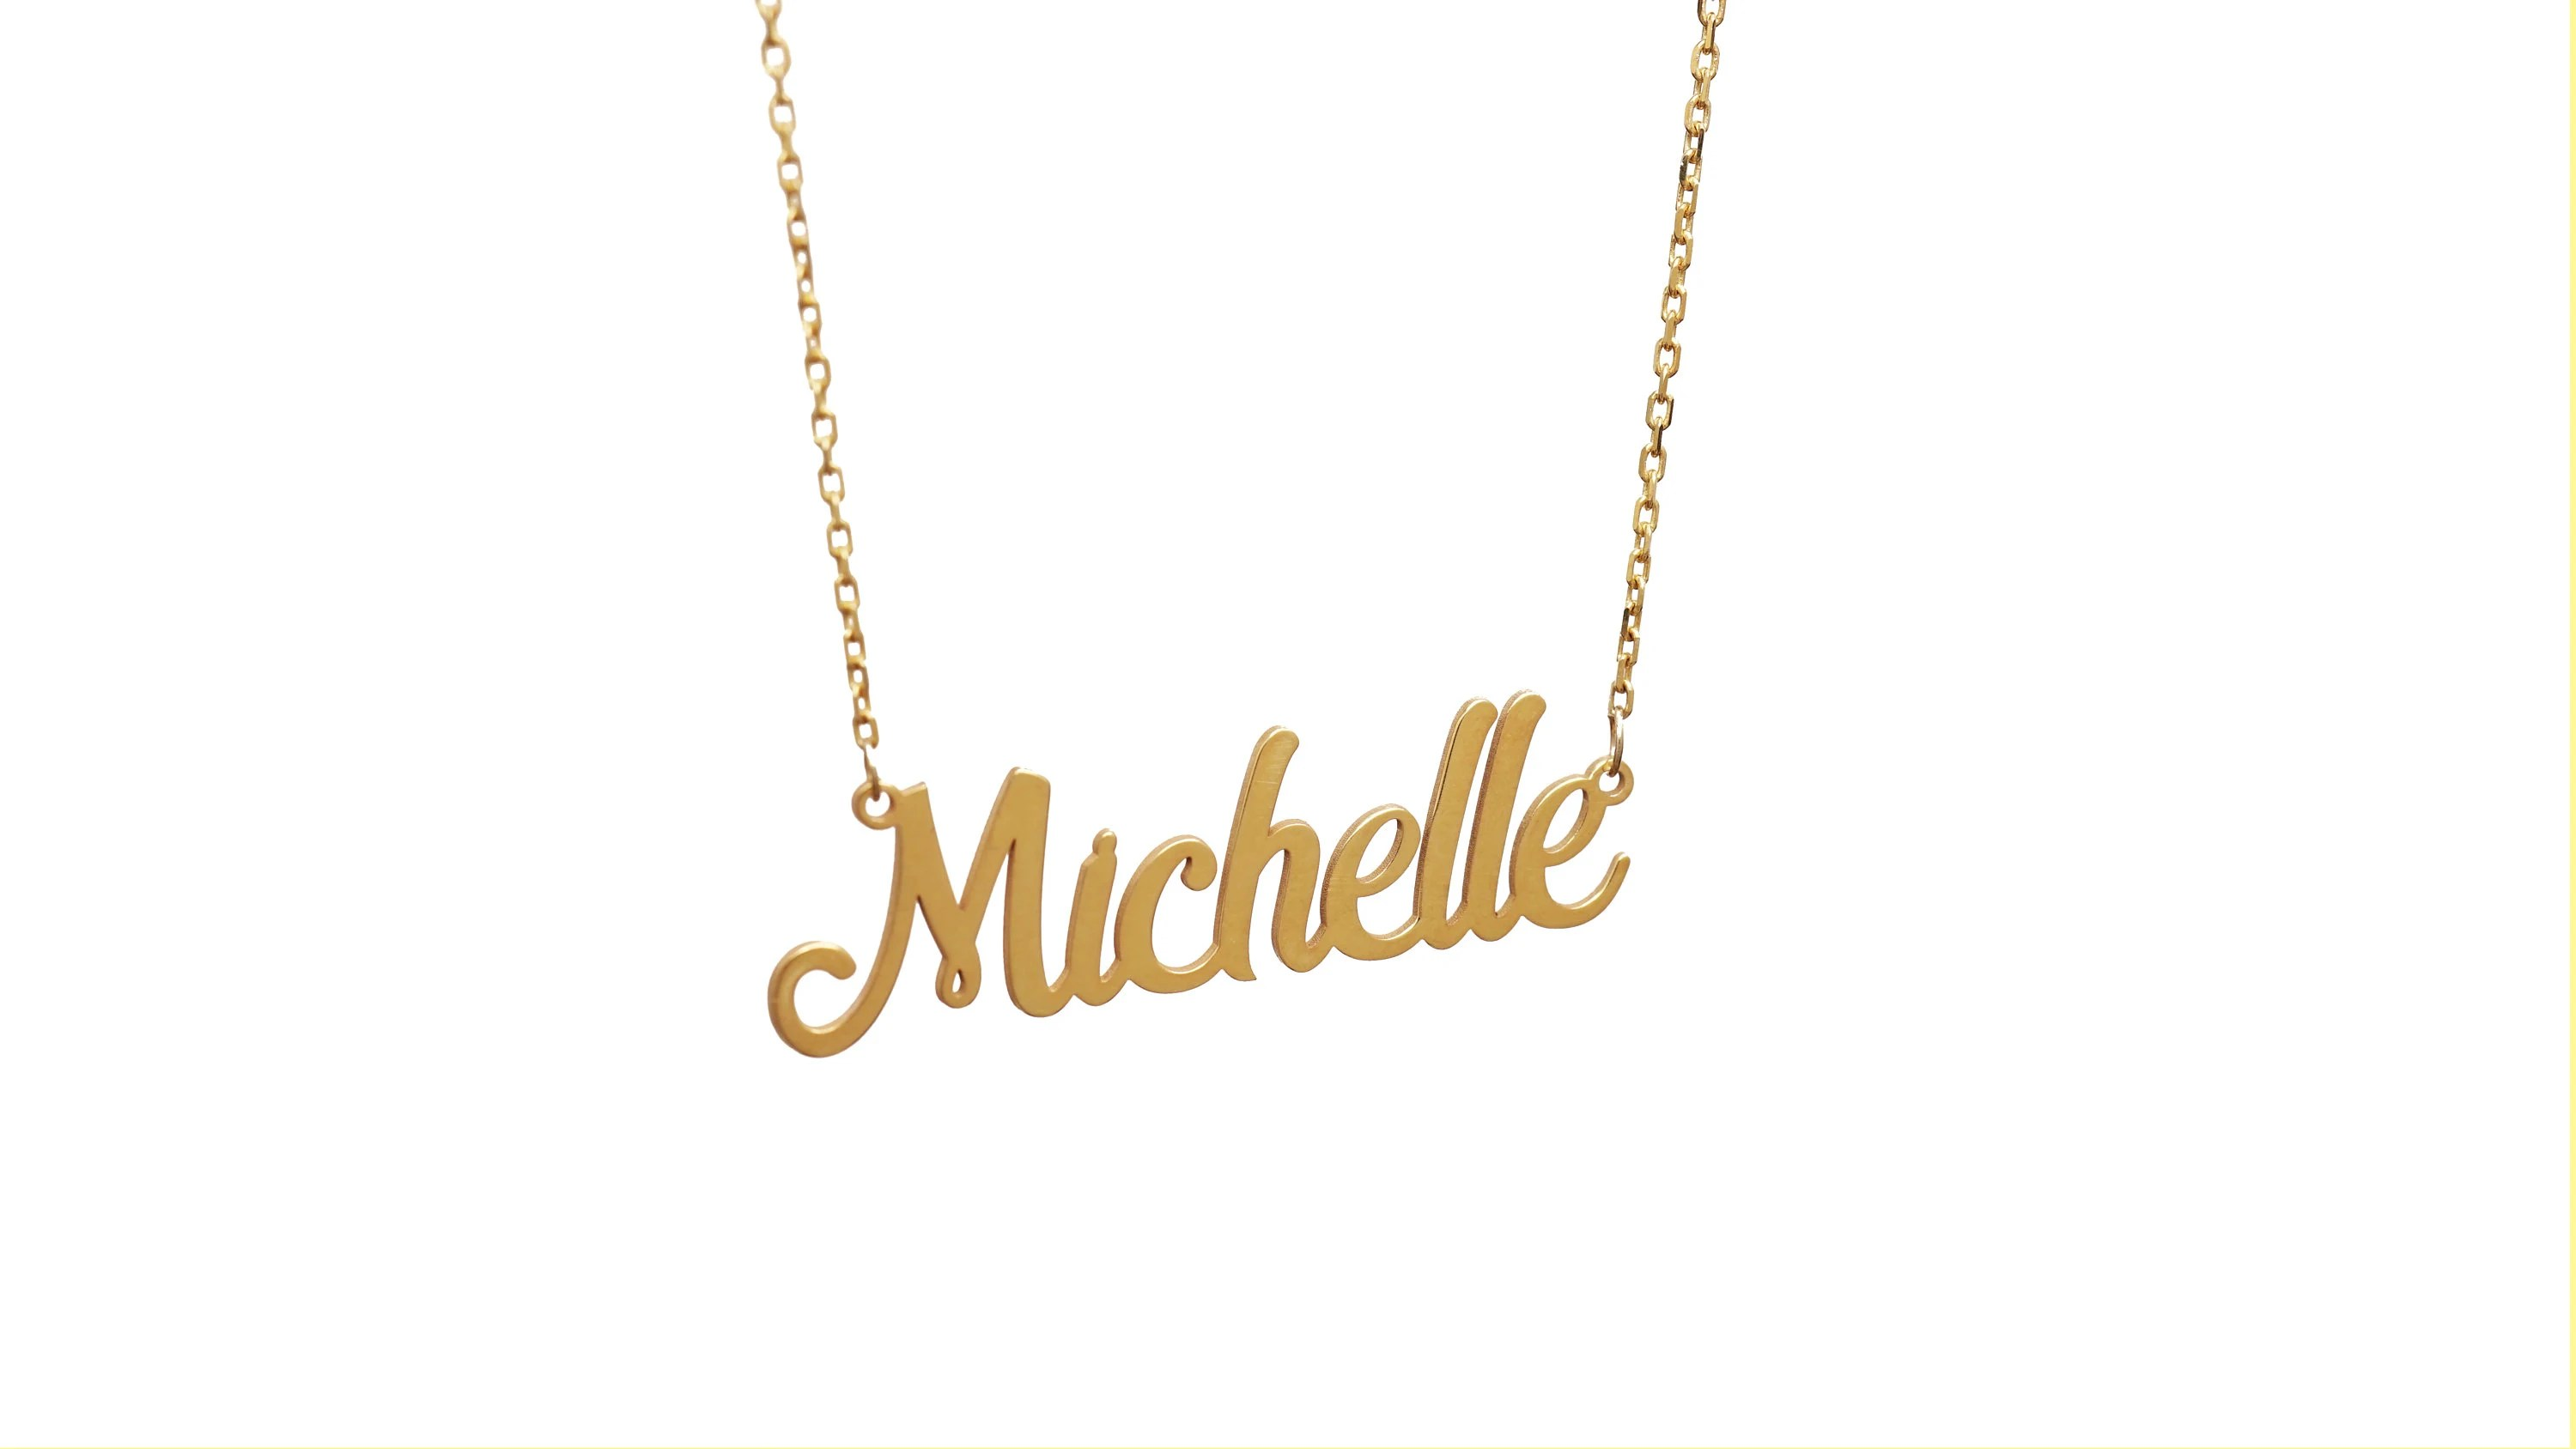 14K Solid Gold Personalized Name Necklace  Custom Name image 2